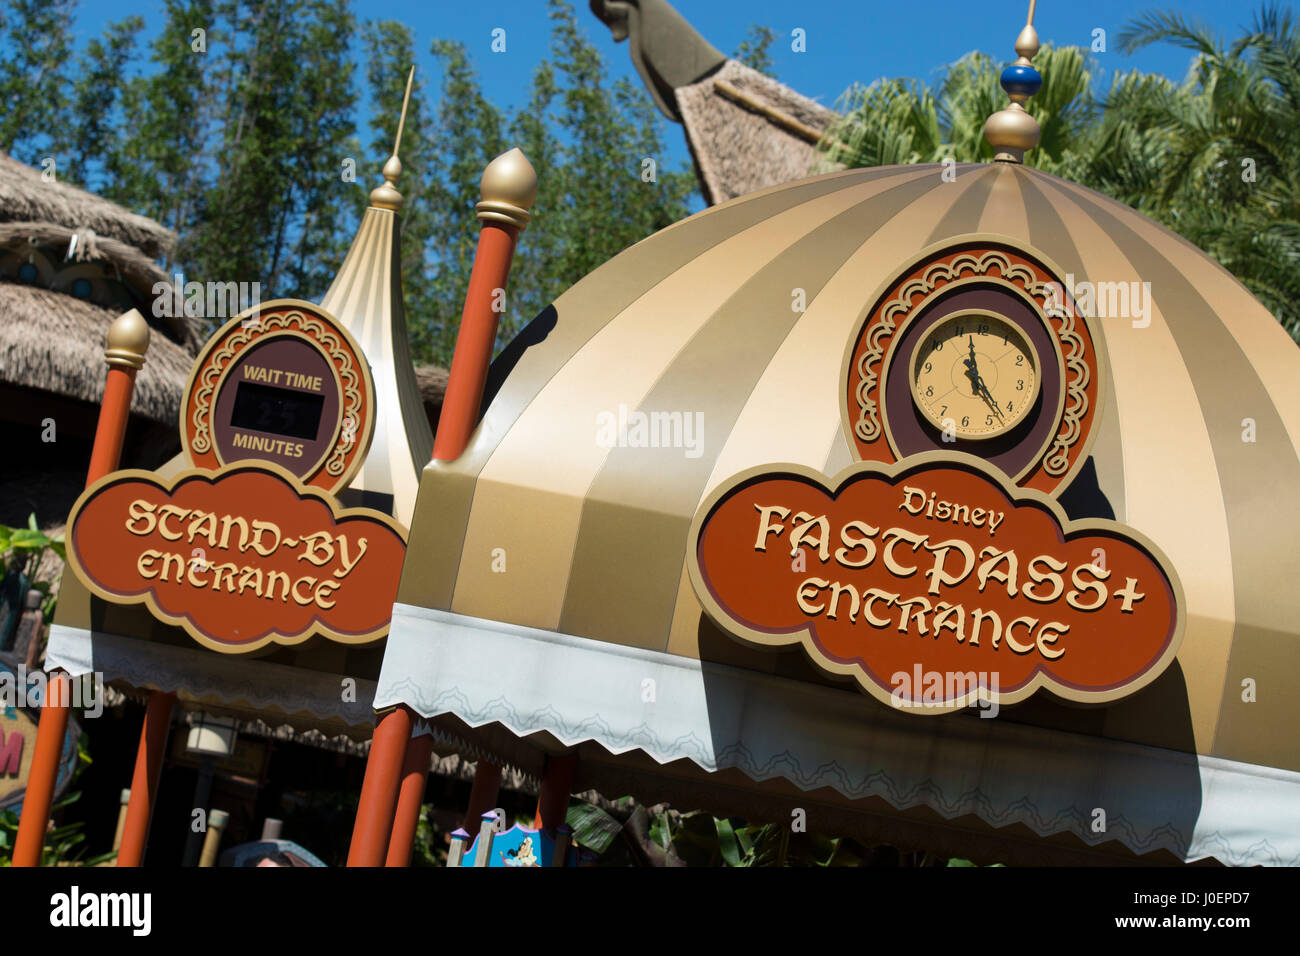 Disney Fast Pass und Stand-by-Eingang, Disneyworld, Orlando Florida Stockbild